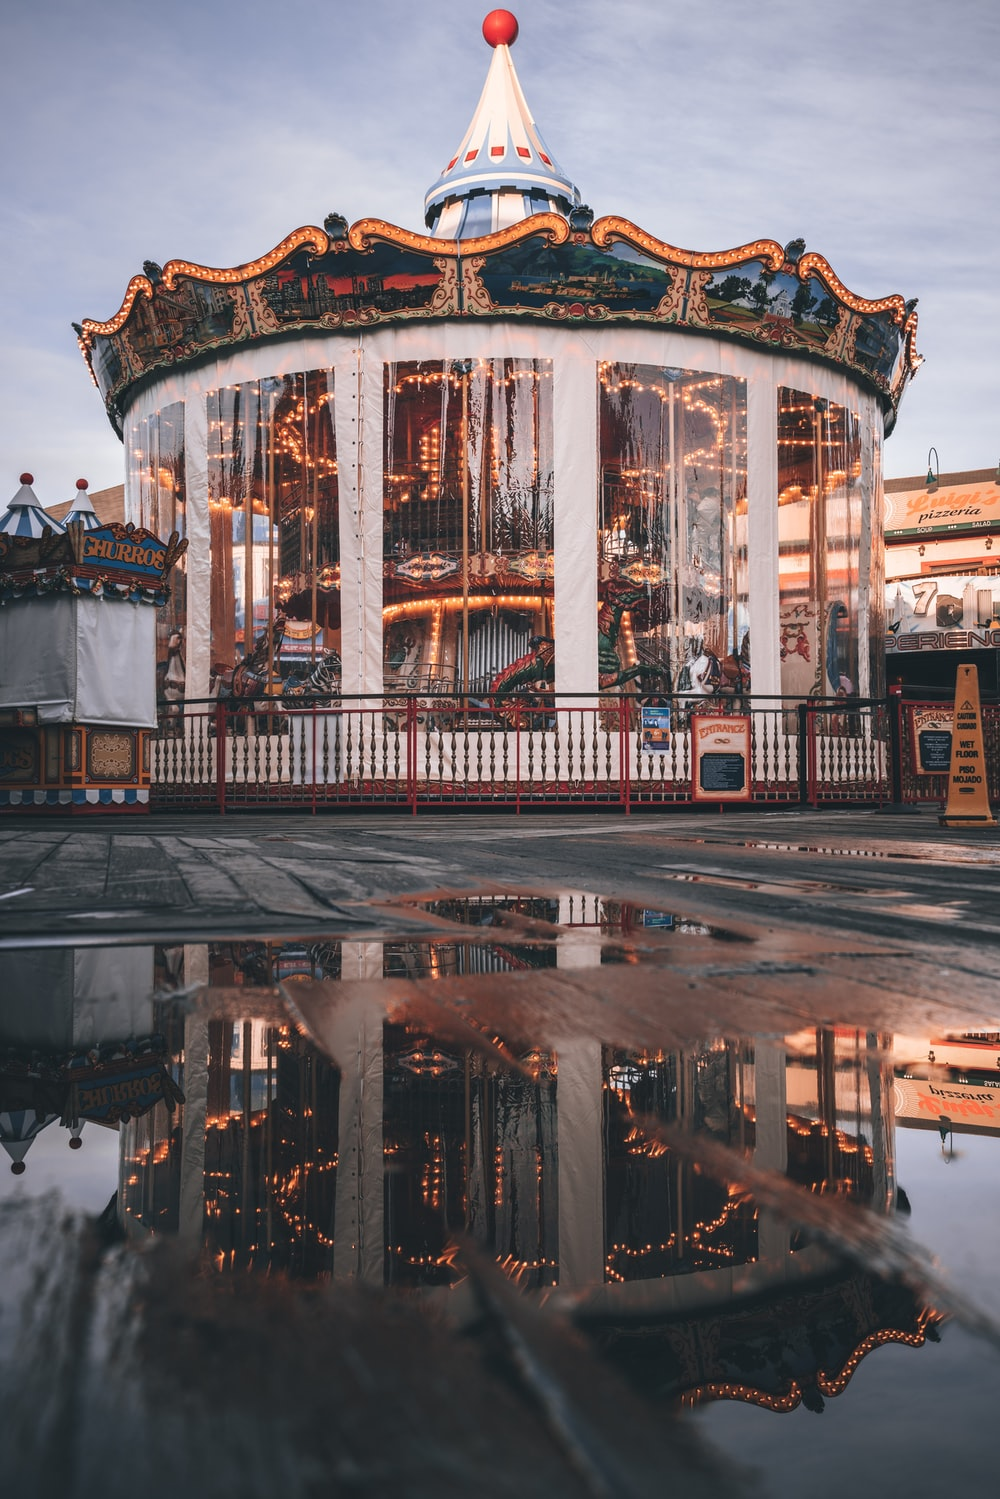 brown and white carousel on a city during night time